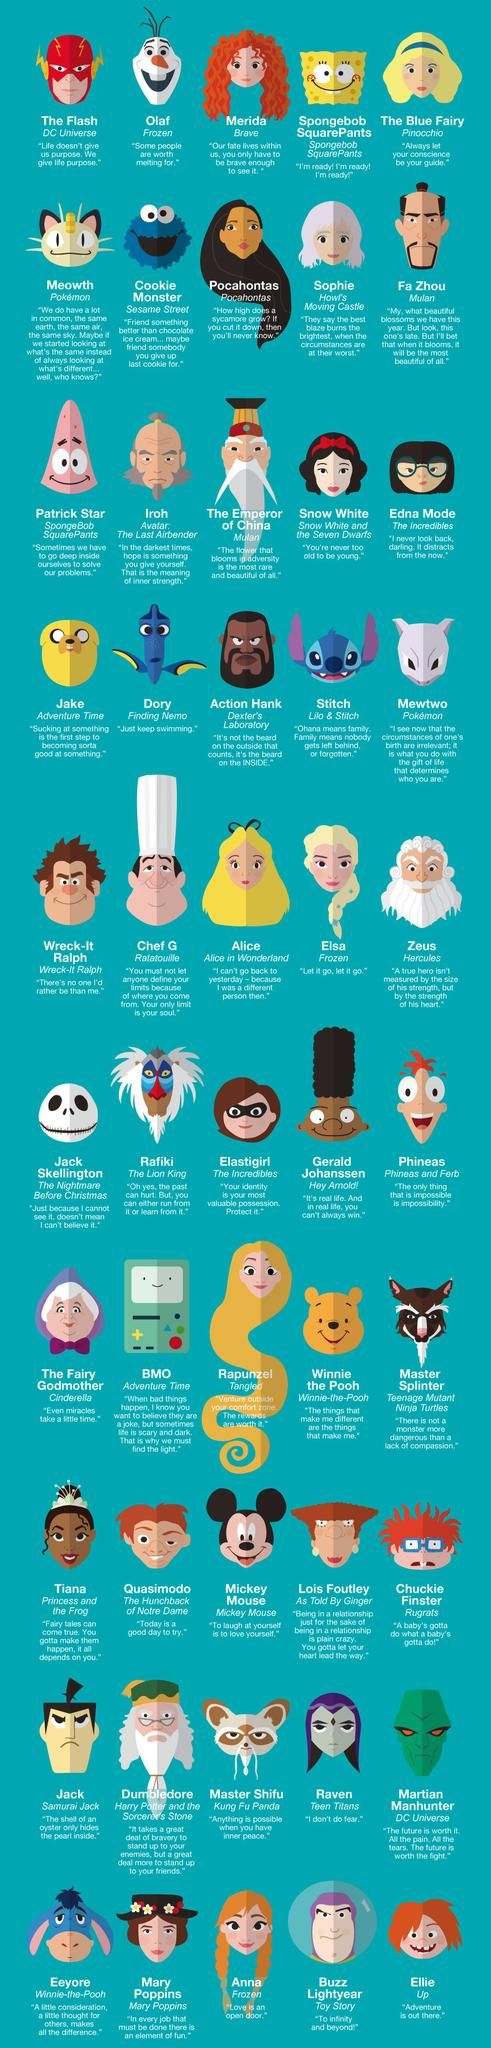 50 Inspiring Life Quotes from Childhood Cartoon Characters